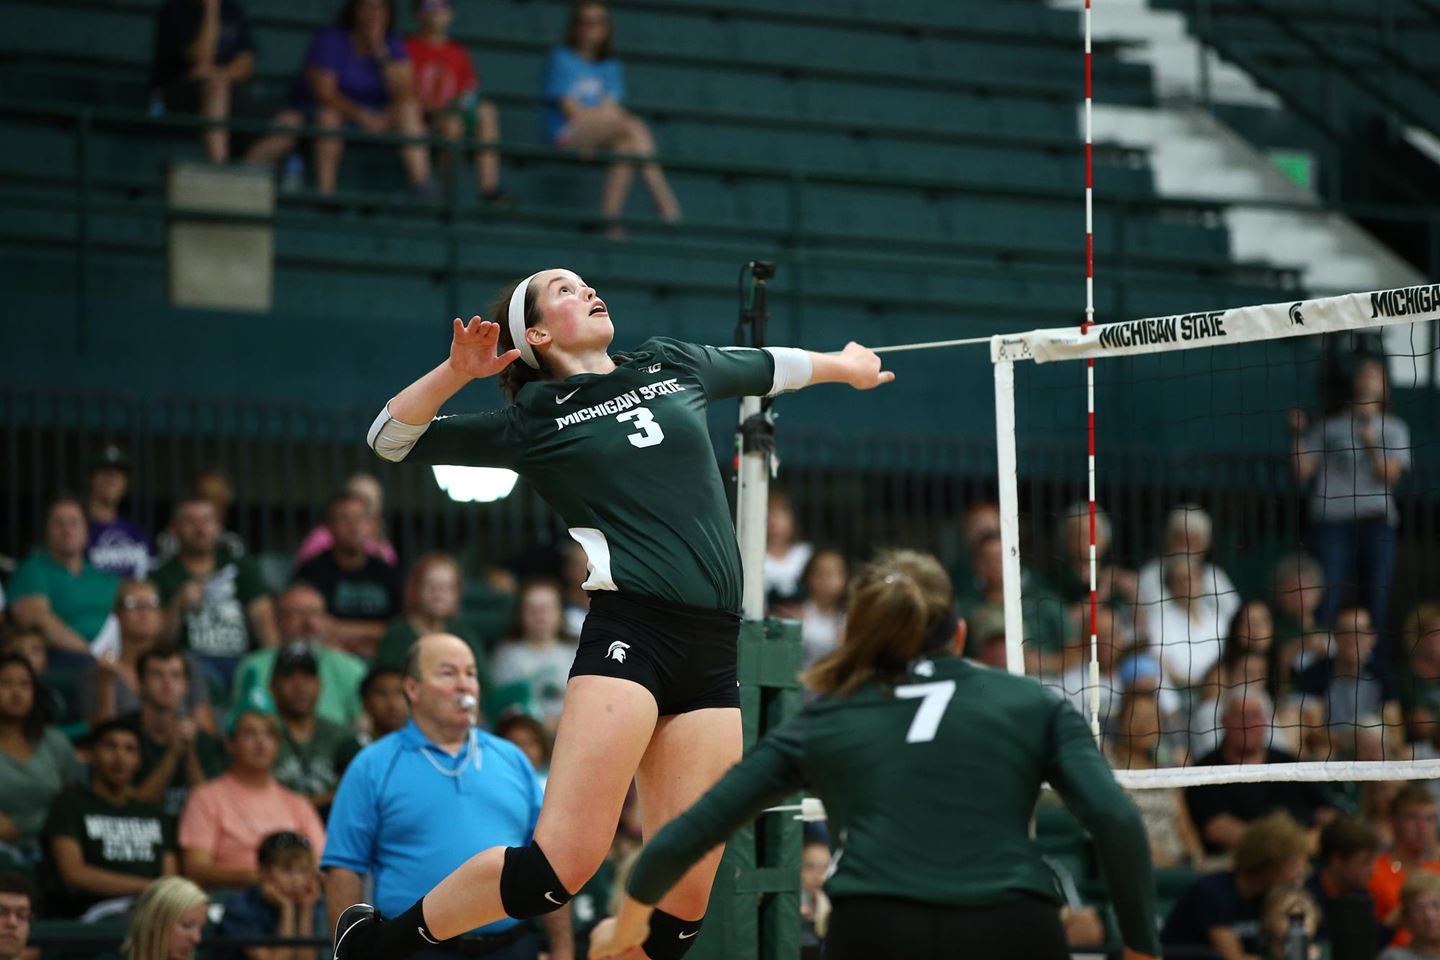 Meredith Norris/Photo: MSU Athletic Communications